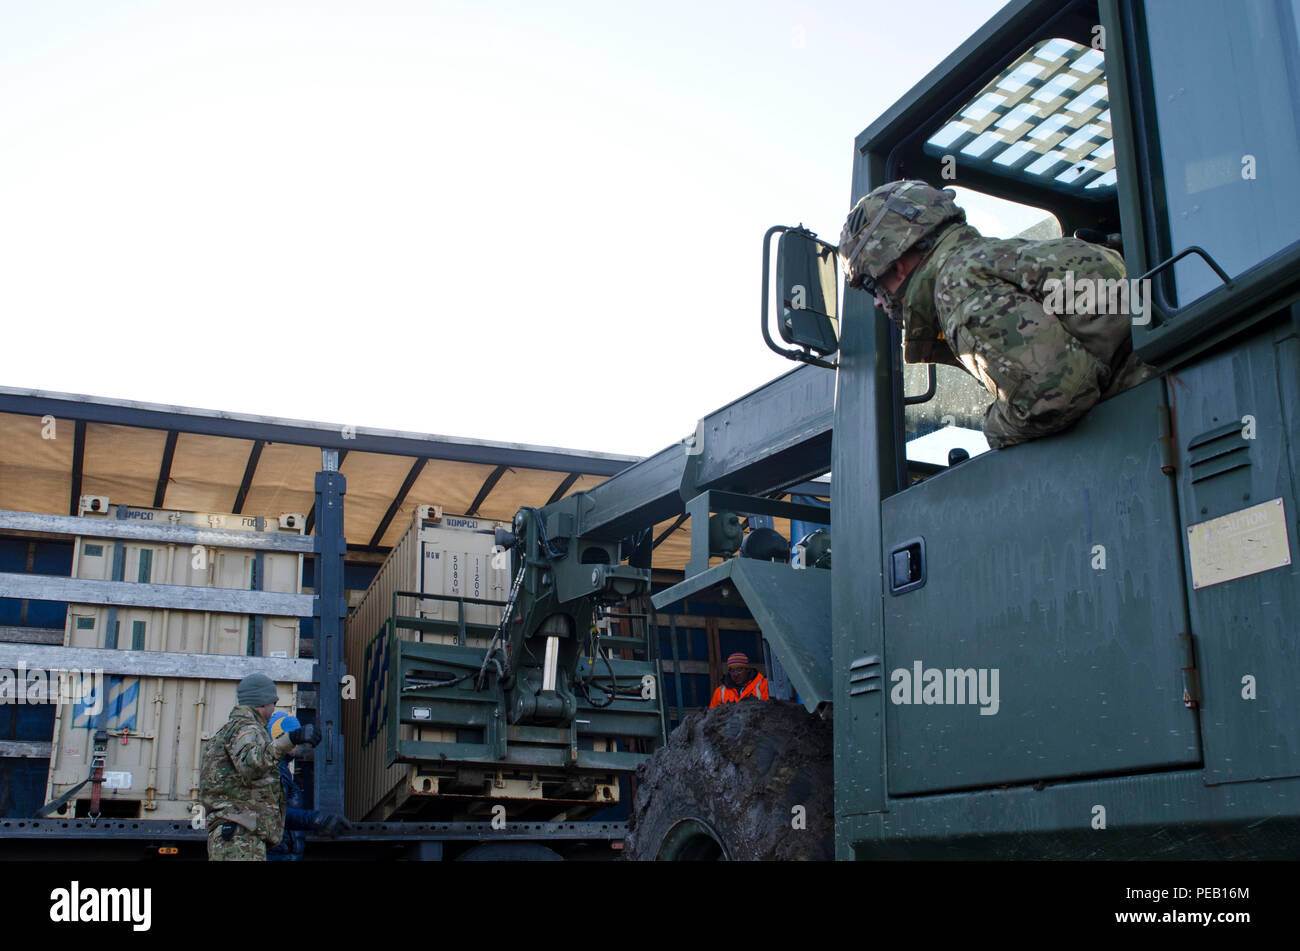 Sgt. Will Davis, a wheeled vehicle mechanic attached to 5th Squadron, 7th Cavalry Regiment, 3rd Infantry Division, Fort Stewart, Ga., originally from Rome, Ga., carefully loads a container onto a trailer as he is guided by Spc. Jose Garrido, a Dealer Troop armorer of 5/7 Cav., originally from Puerto Rico, during a transporting operation in Smardan, Romania, Dec. 2, 2015. (U.S. Army Photo by Staff Sgt. Steven M. Colvin/Released) - Stock Image